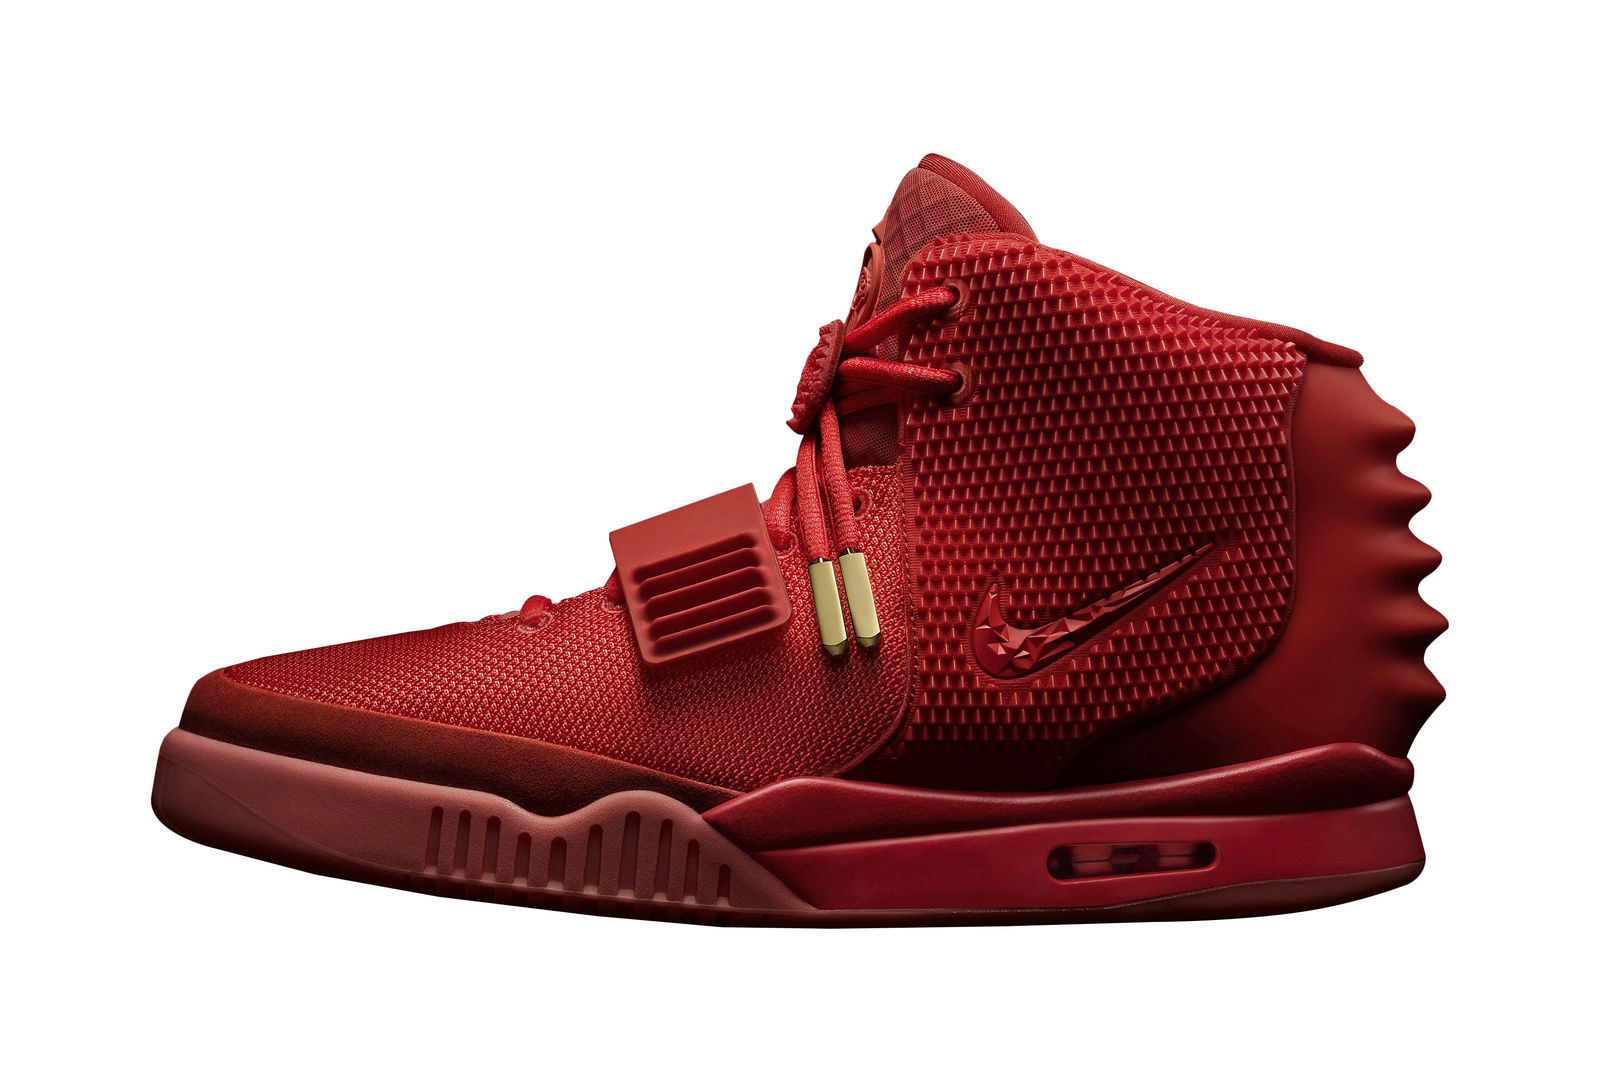 79d634e332c55 Nike Air Yeezy 2 Red October Kanye West Size 10 With Receipt 100 ...